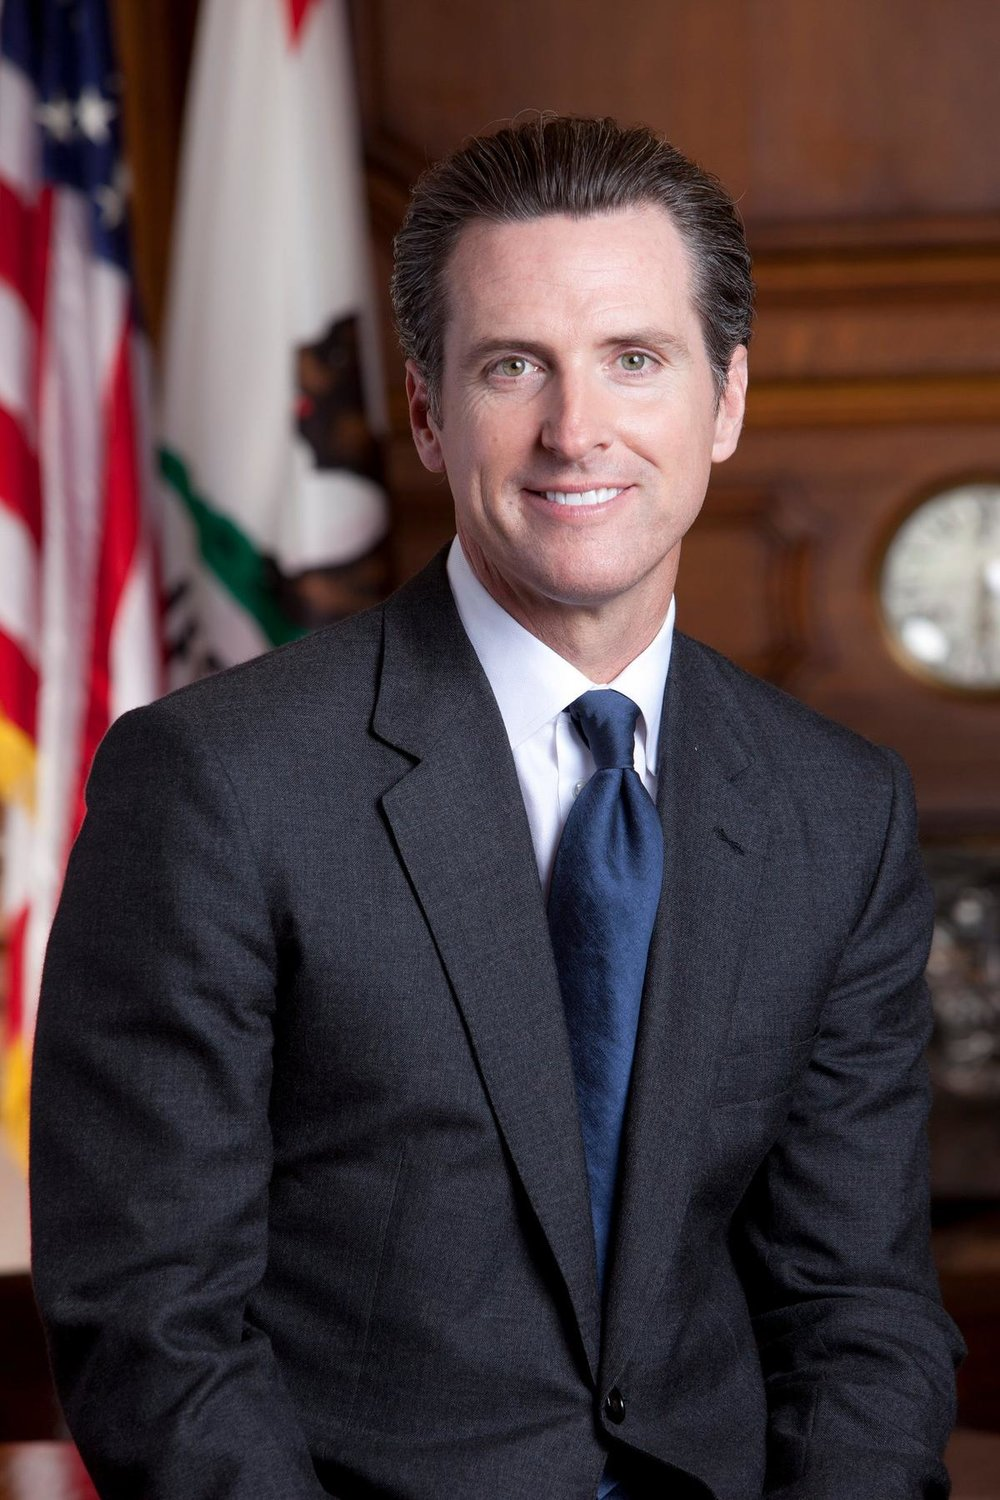 Gavin Newsom, California